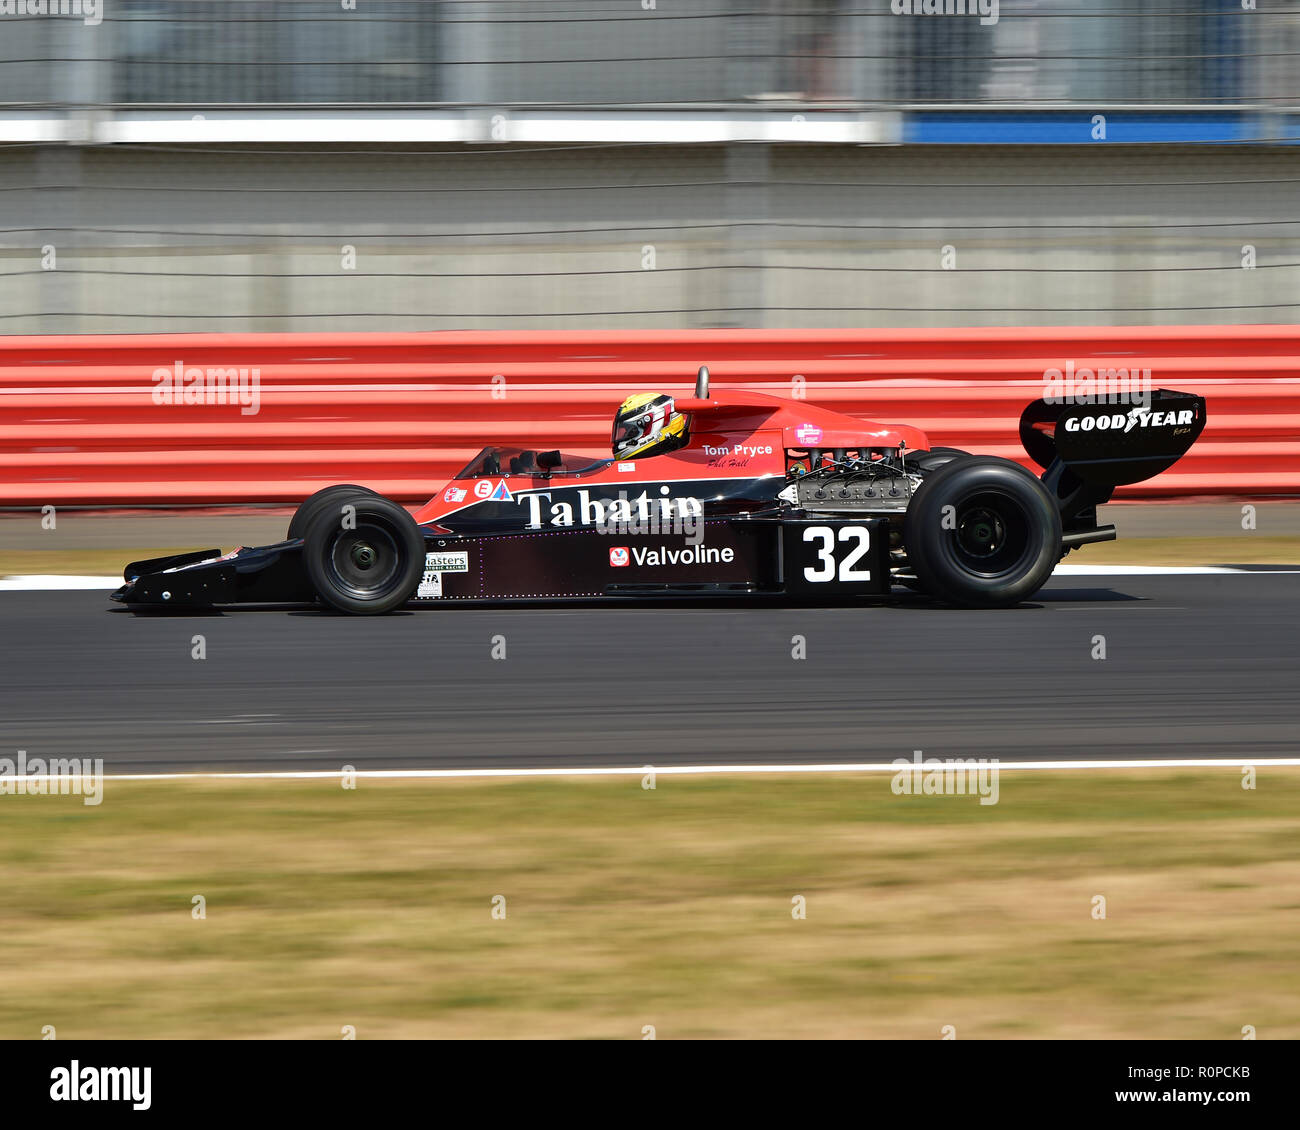 Philip Hall, Shadow DN5, FIA Masters, Historic Formula One, F1, Formula 1, Silverstone Classic, July 2018, Silverstone, Chris McEvoy, circuit racing,  - Stock Image